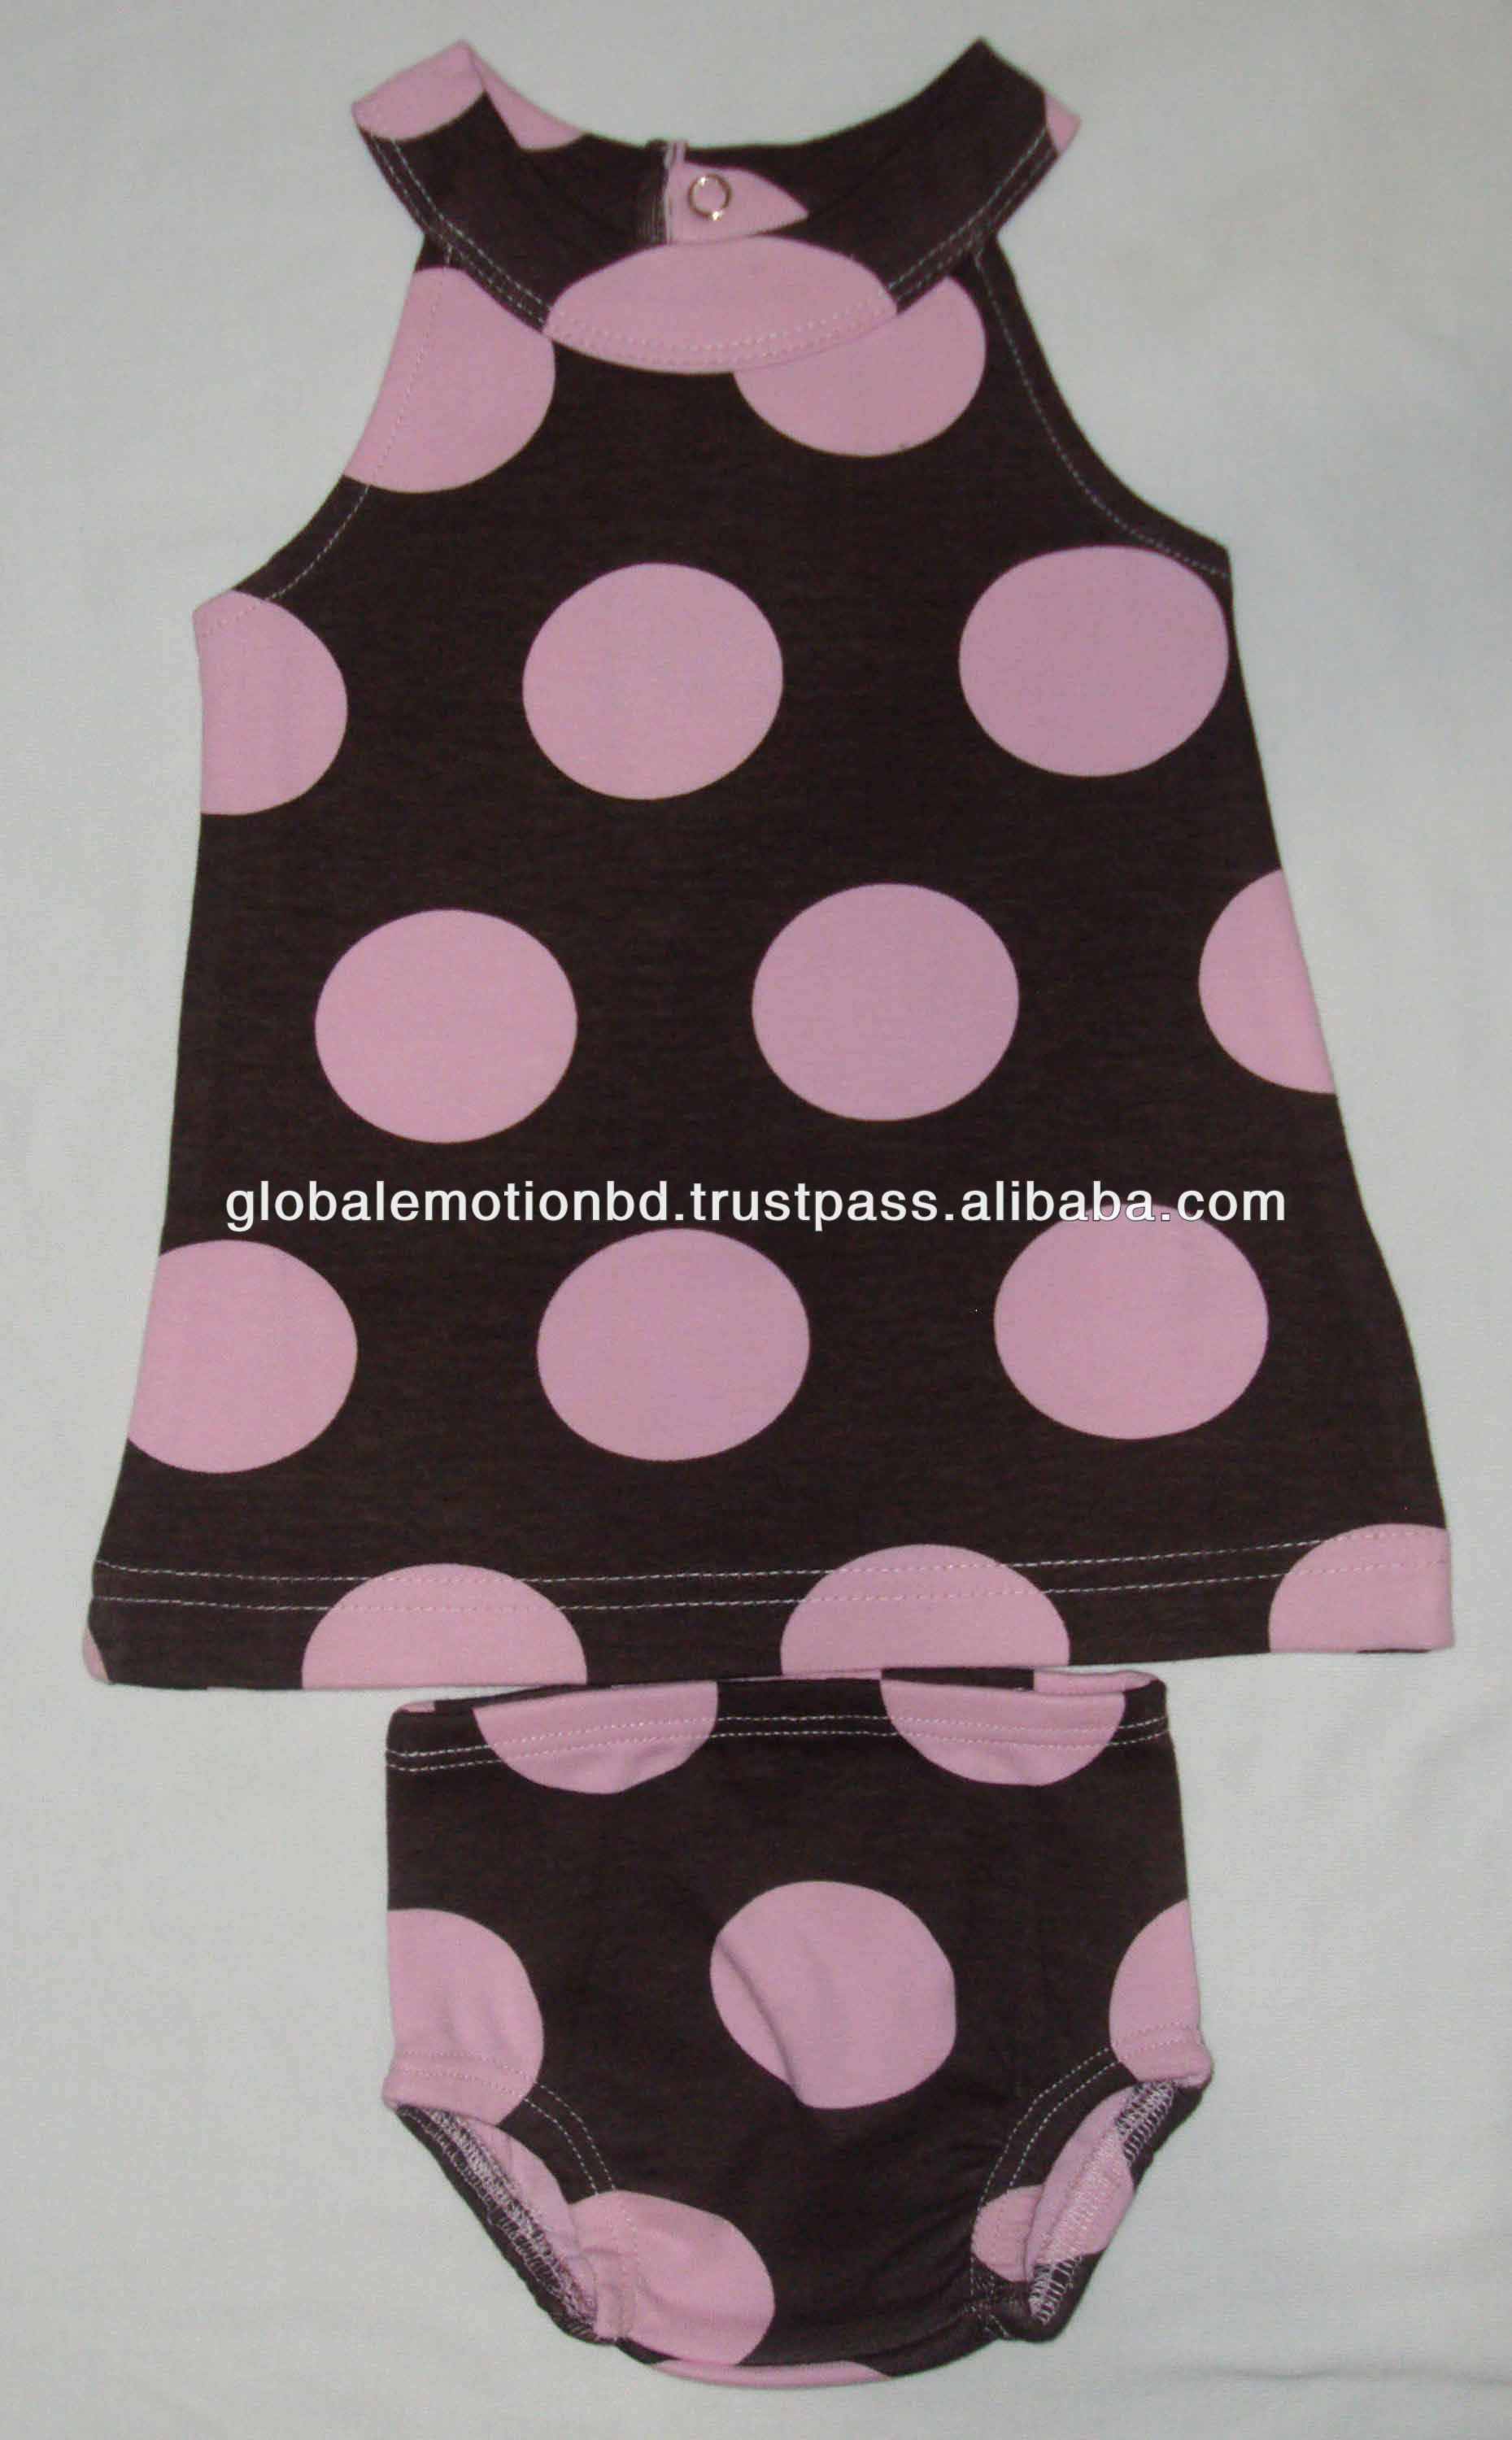 Bangladesh Baby And Infant Clothing Bangladesh Baby And Infant